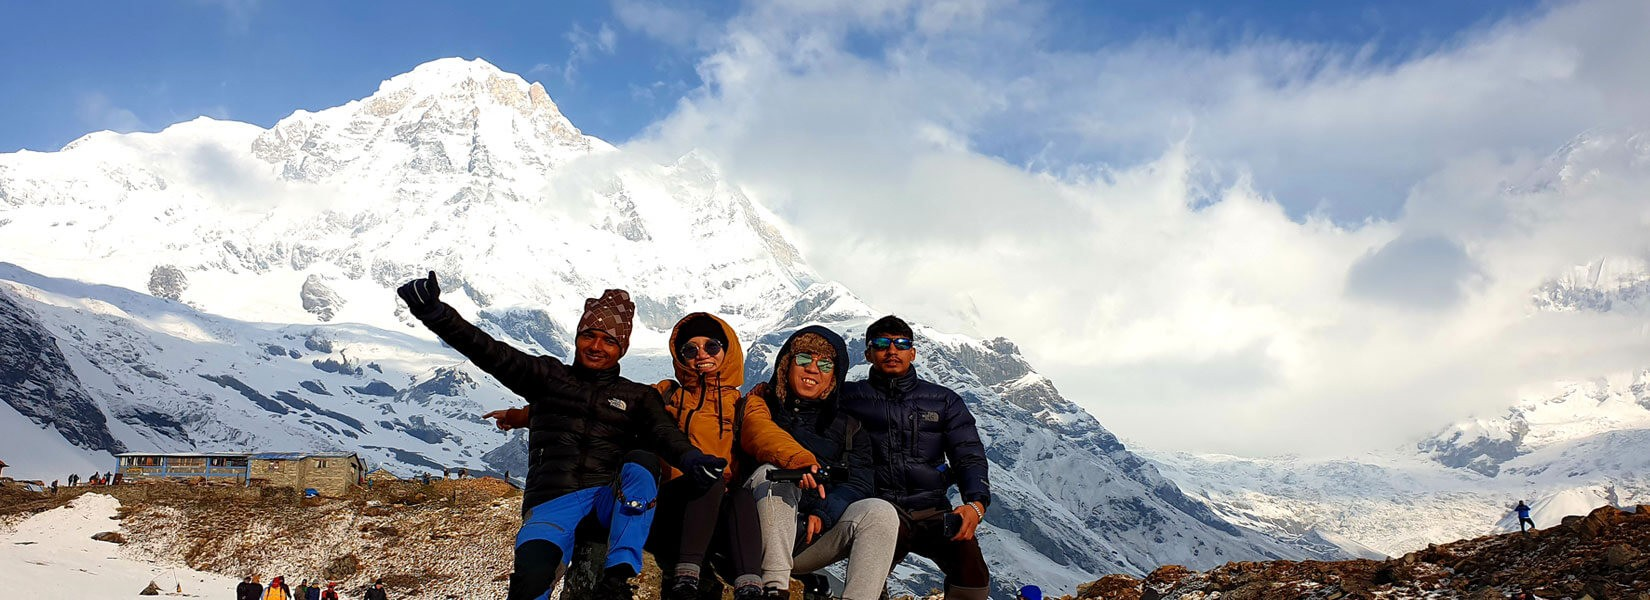 Annapurna Base Camp Via Poon Hill Trekking